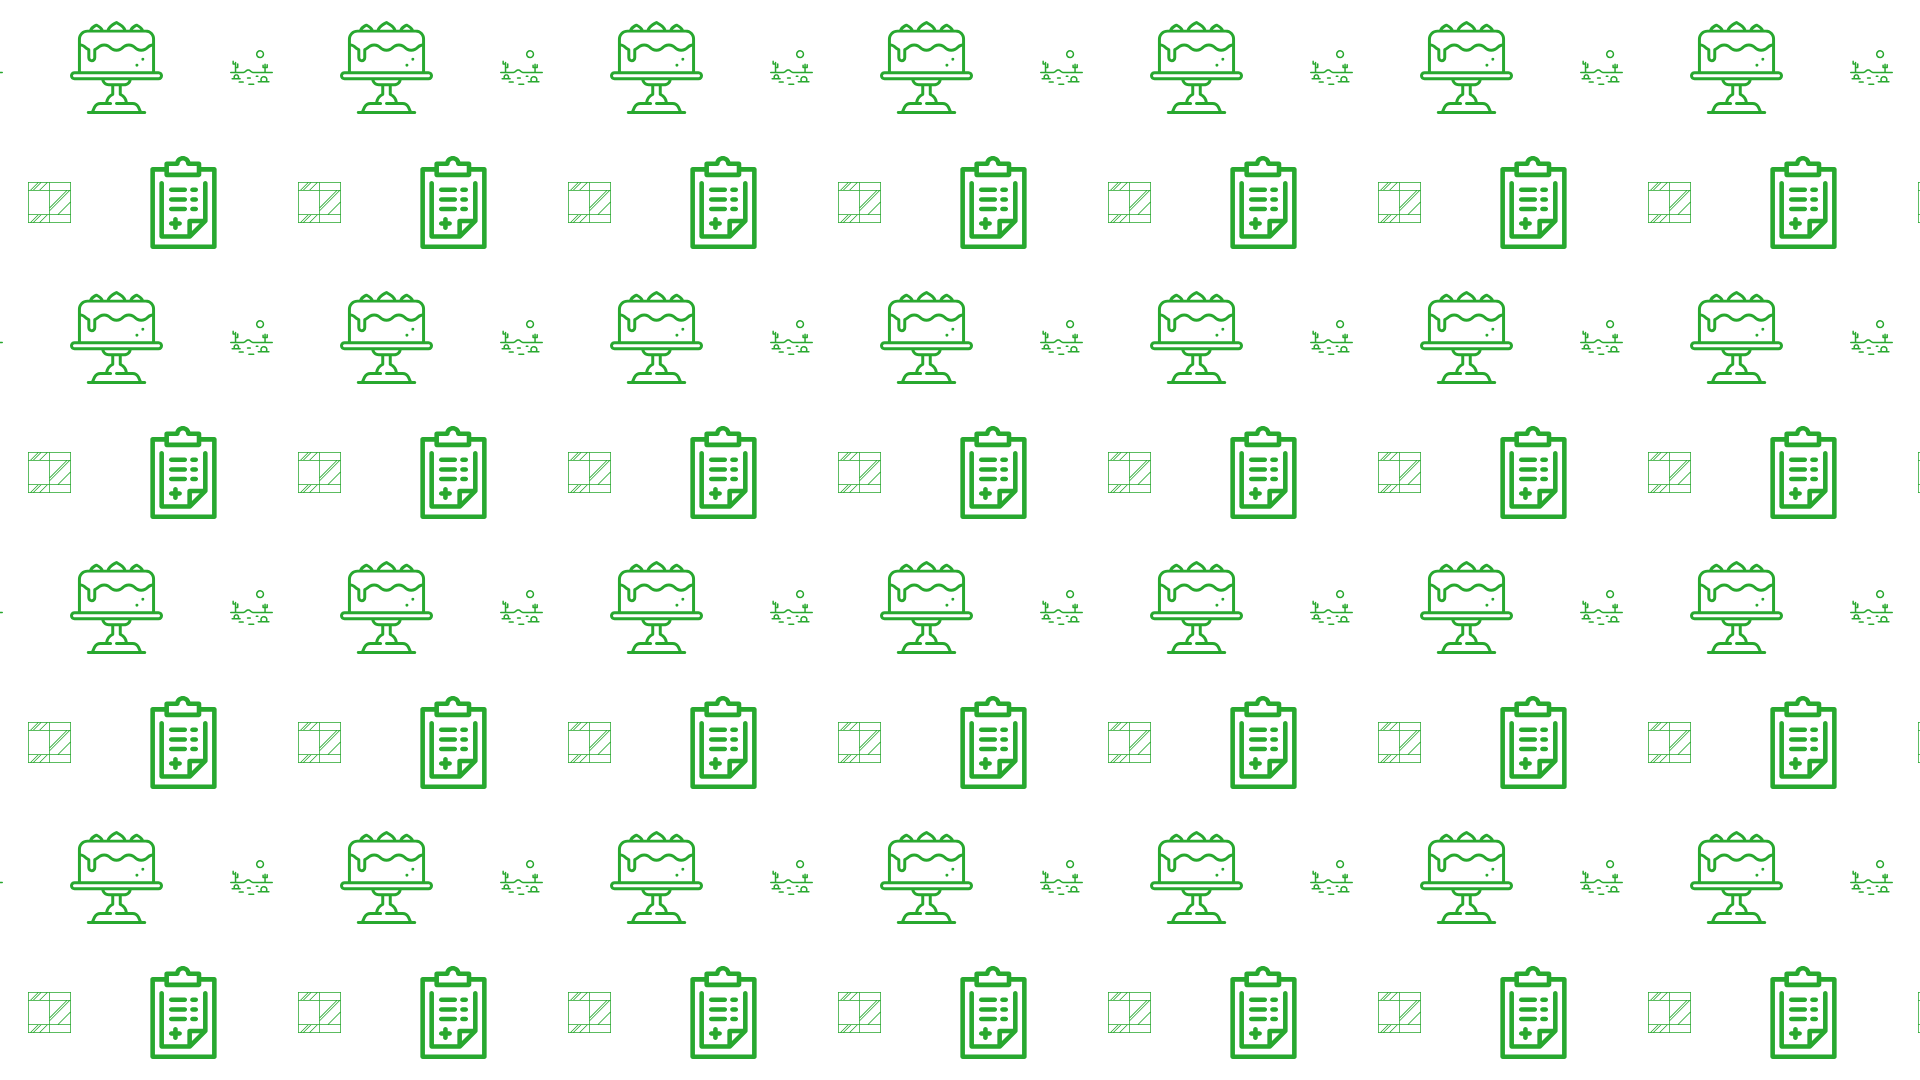 Hd Pattern Design Iconpattern Image Customize Download It For